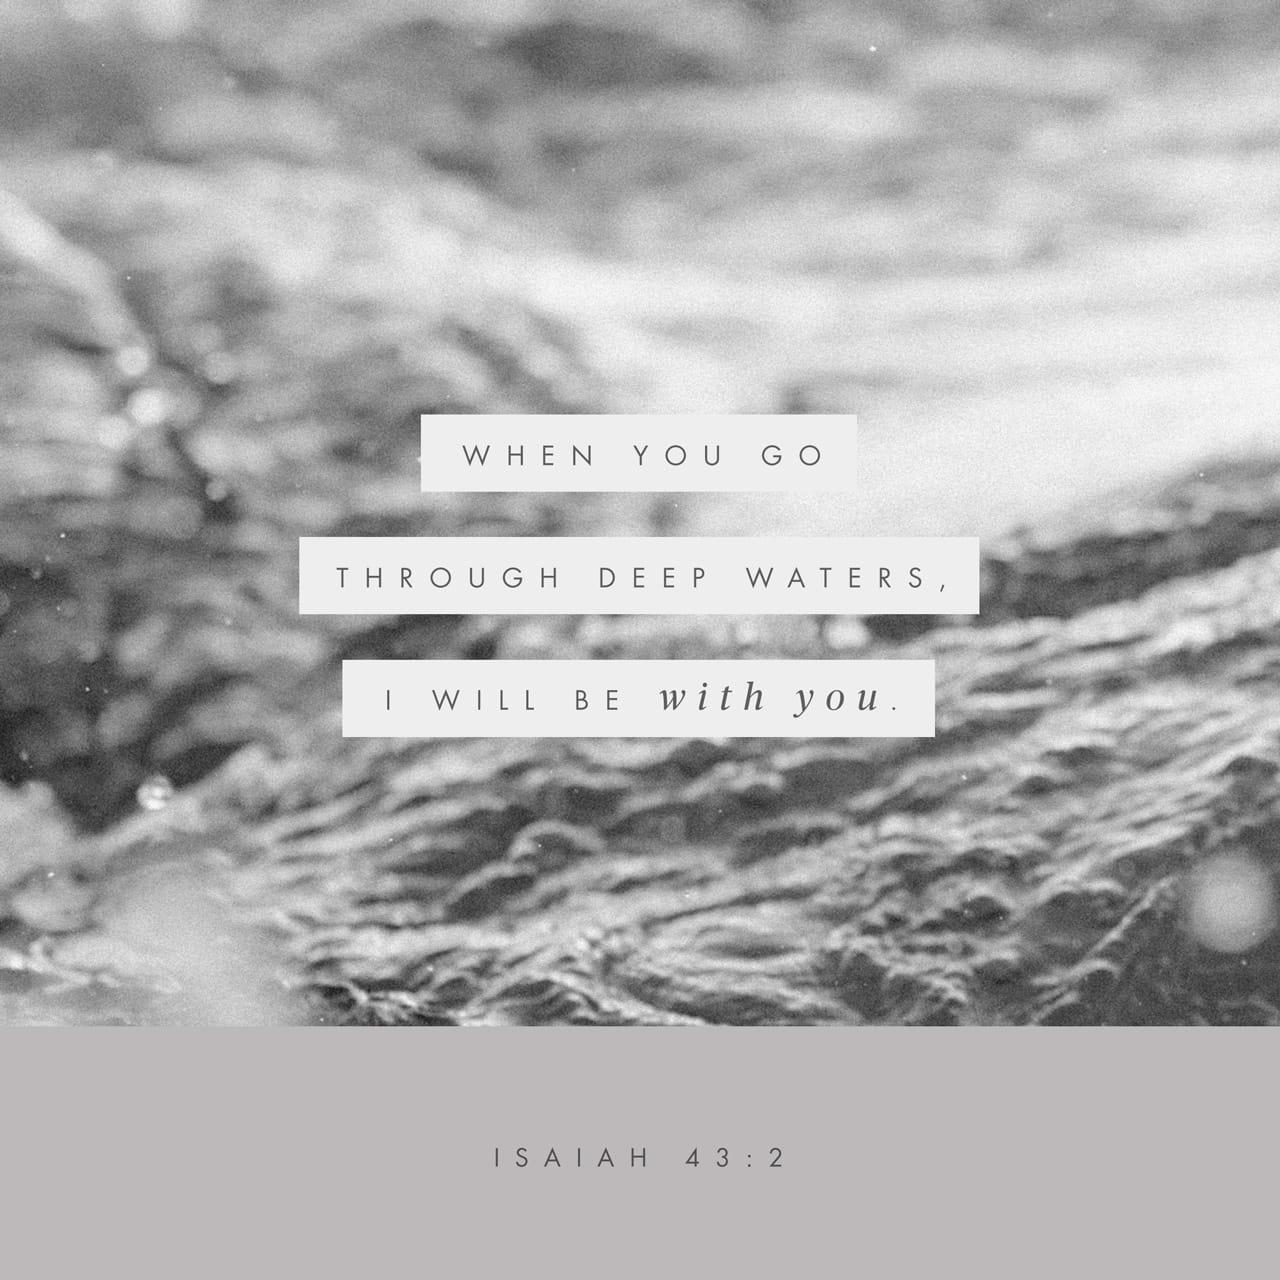 Isaiah 43:2 When you pass through the waters, I will be with you; and when you pass through the rivers, they will not sweep over you. When you walk through the fire, you will not be burned; the flames will not se | New International Version (NIV)